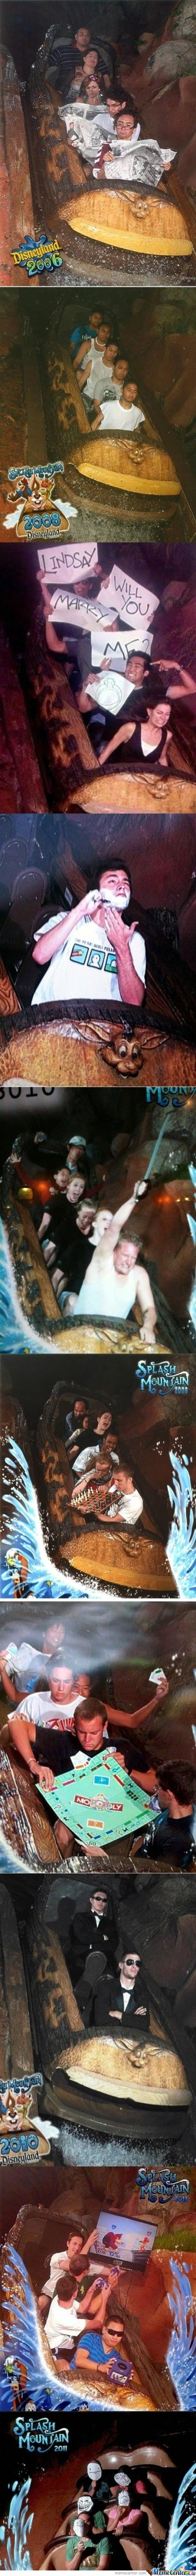 Dysneyland's splash mountain